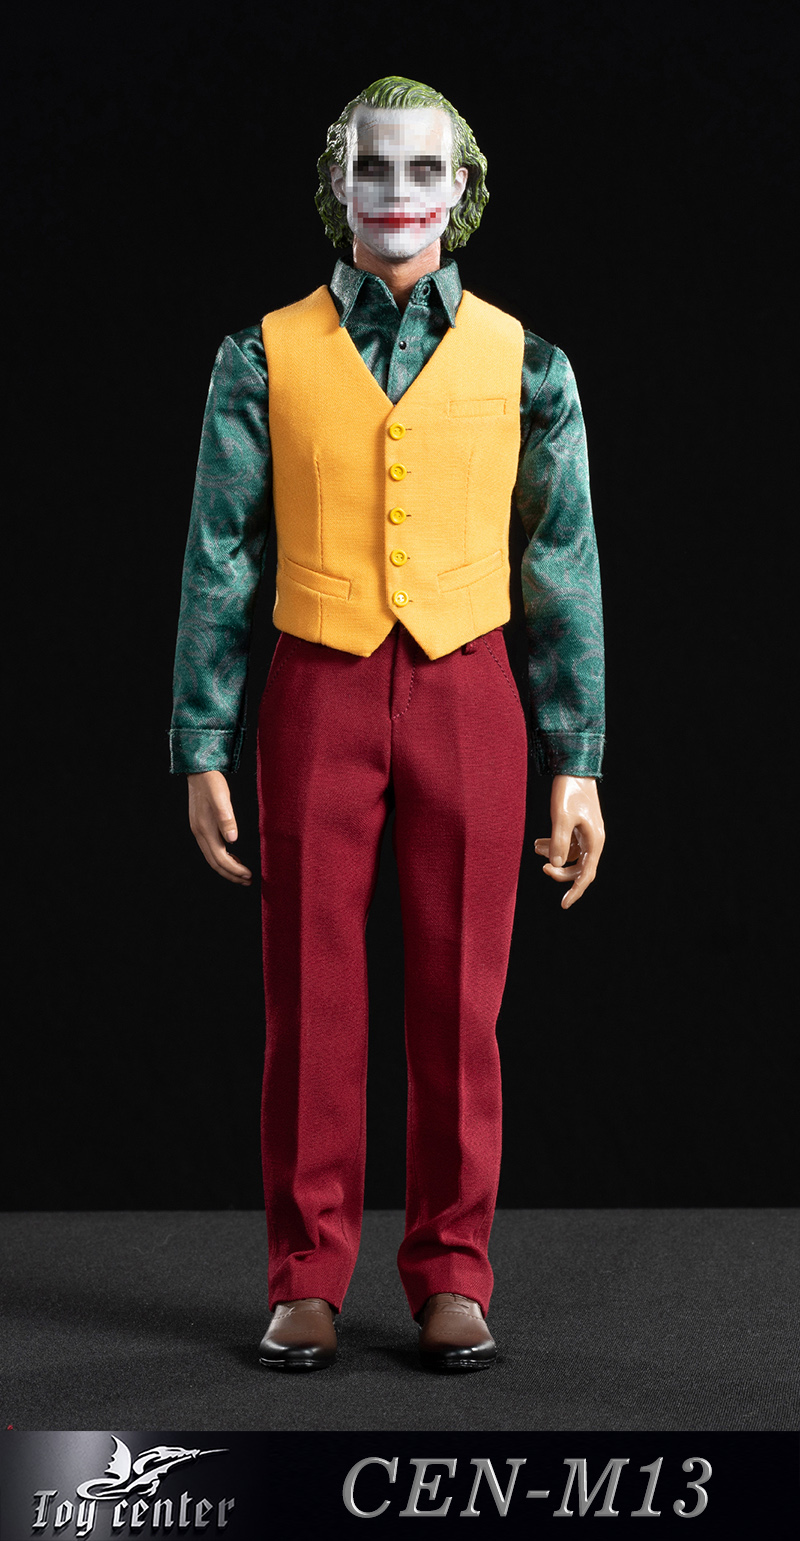 clothes - NEW PRODUCT: Toy center: 1/6 Clown exclusive red suit CEN-M13# 22332810